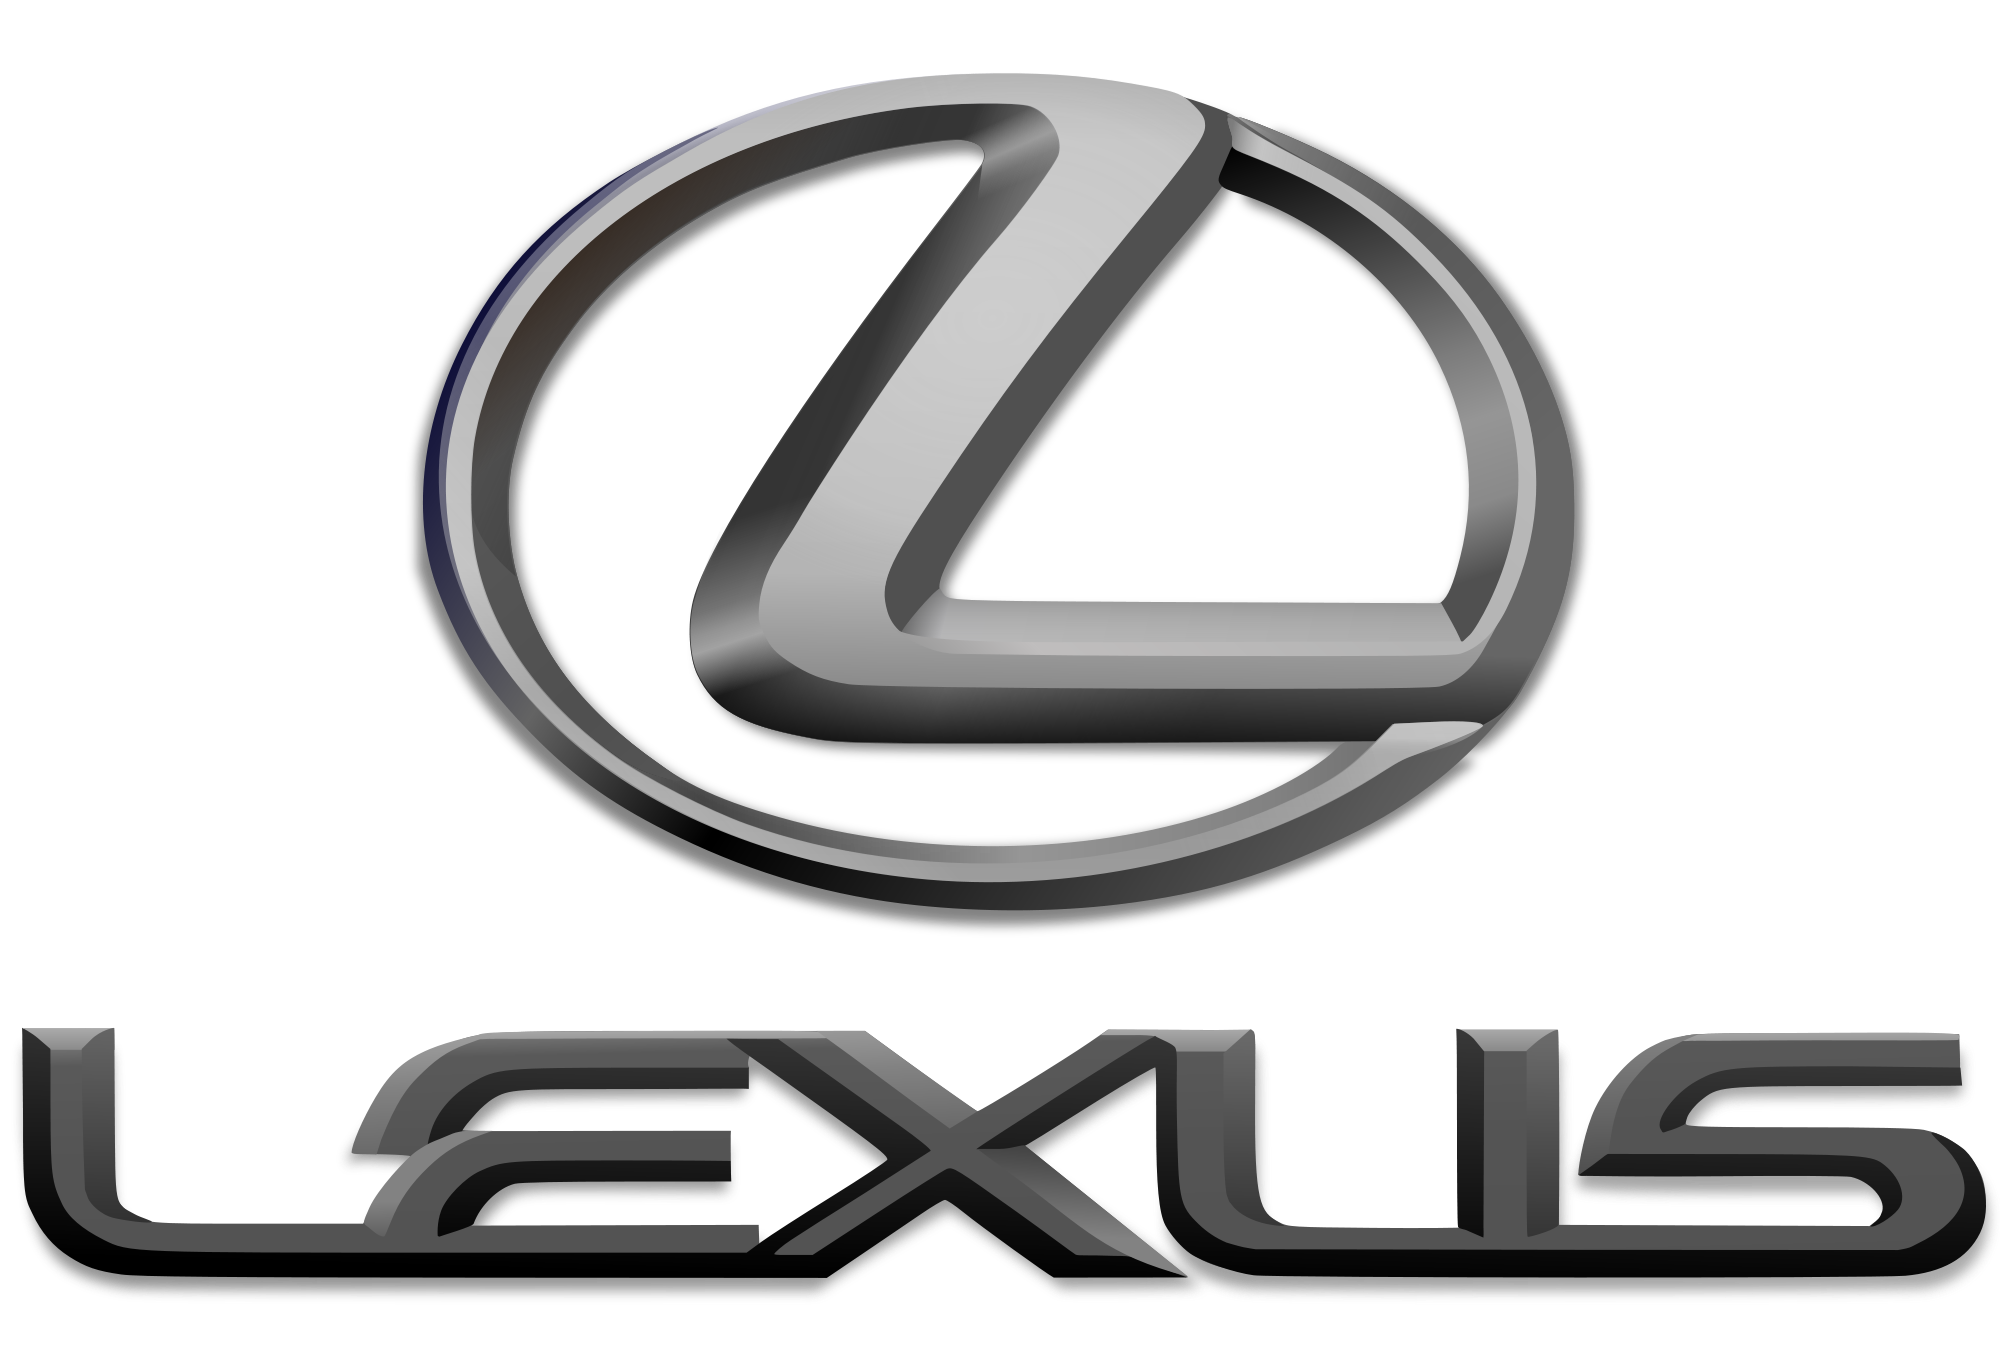 Lexus Logo, Lexus Car Symbol Meaning And History.